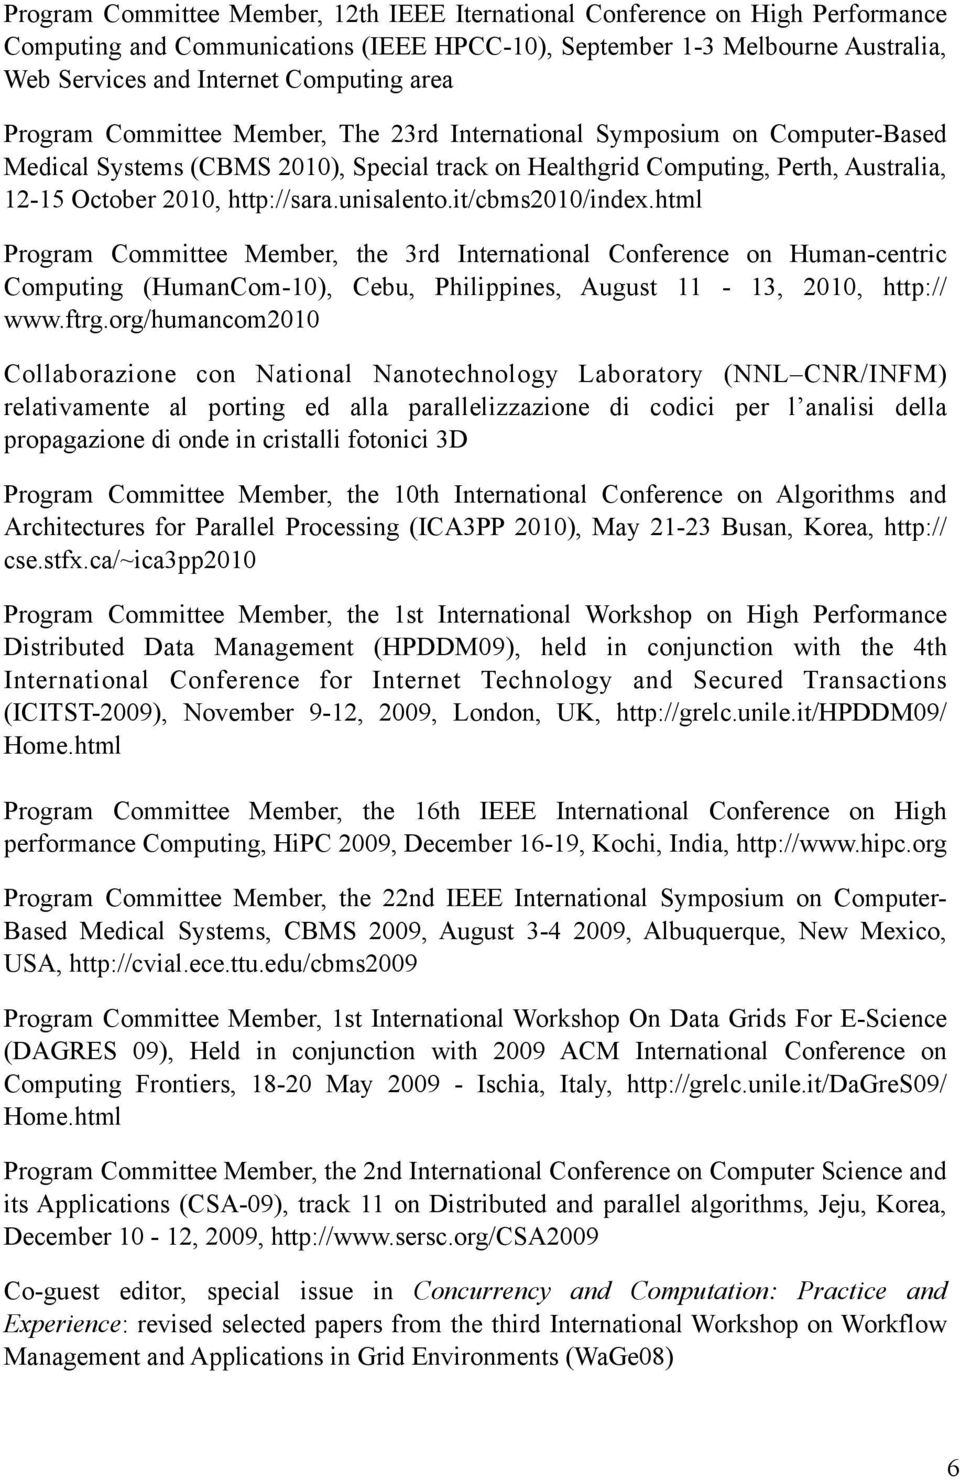 unisalento.it/cbms2010/index.html Program Committee Member, the 3rd International Conference on Human-centric Computing (HumanCom-10), Cebu, Philippines, August 11-13, 2010, http:// www.ftrg.